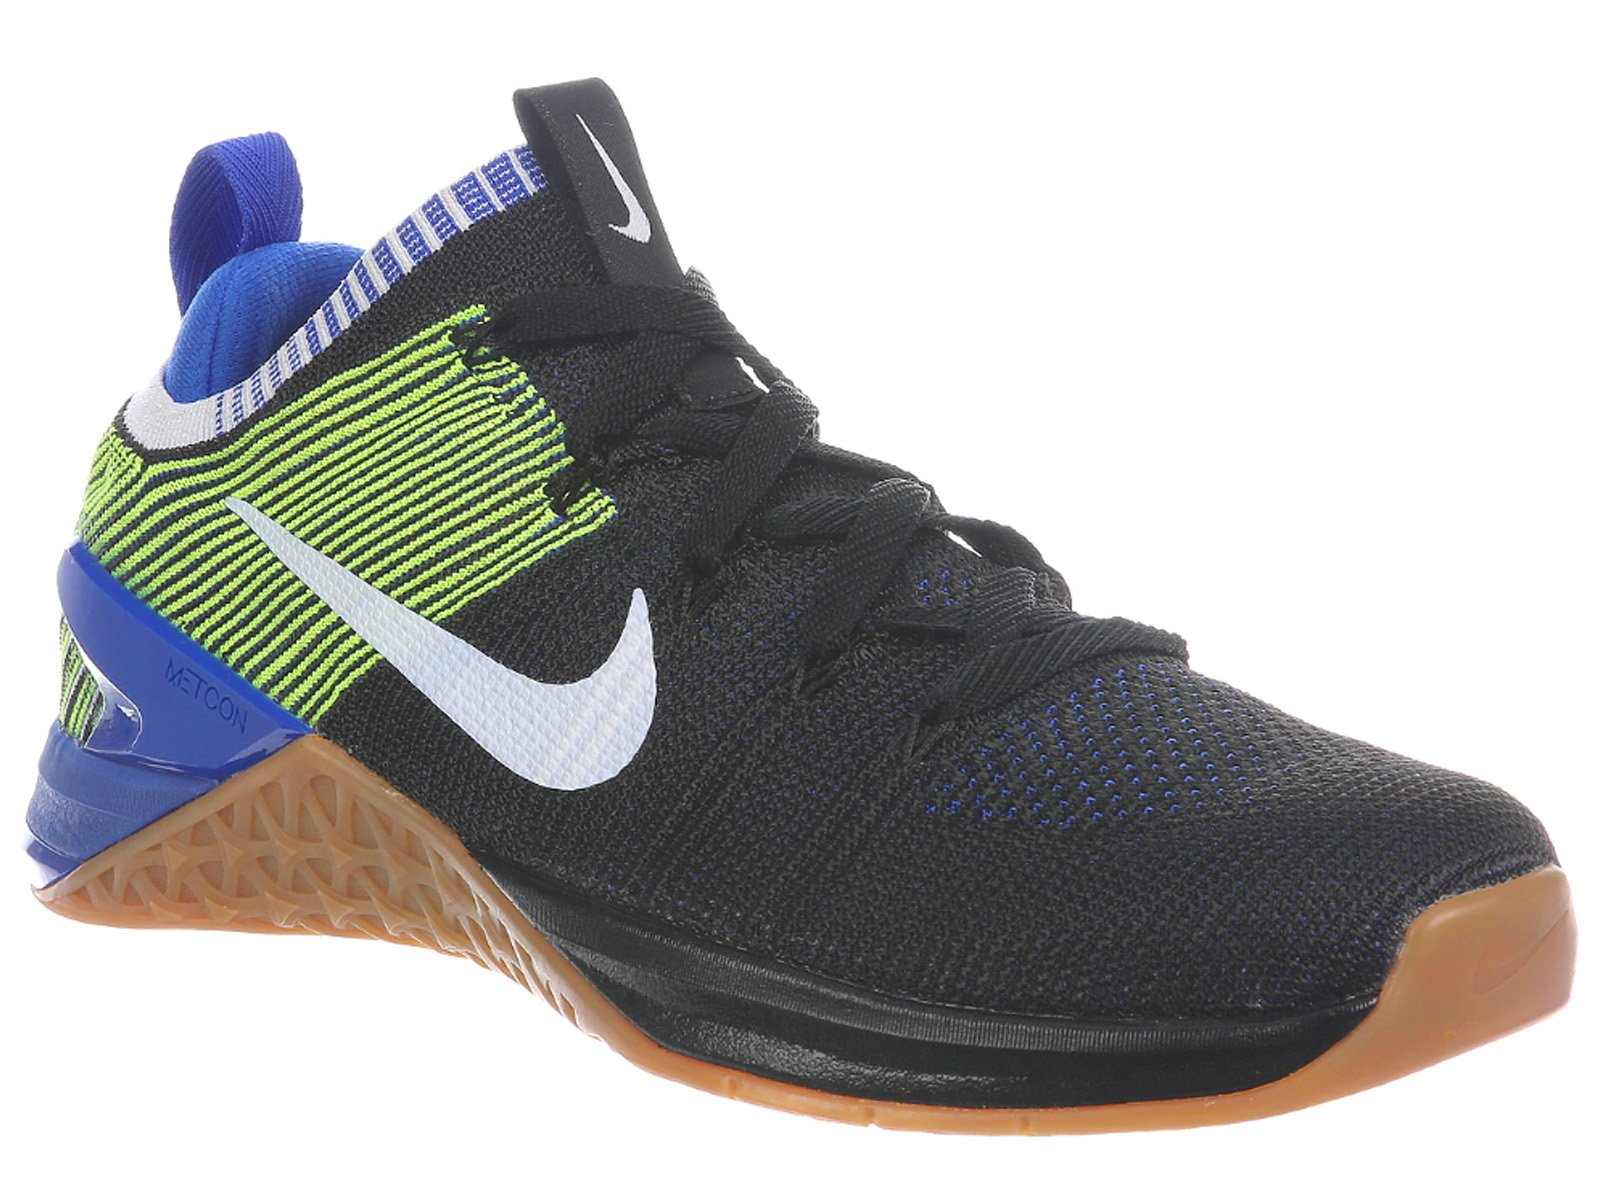 check out b94bc 2d745 Galleon - Nike Men s Metcon DSX Flyknit 2 Nylon Running Shoes (9 M US, Black White Racer  Blue Volt)